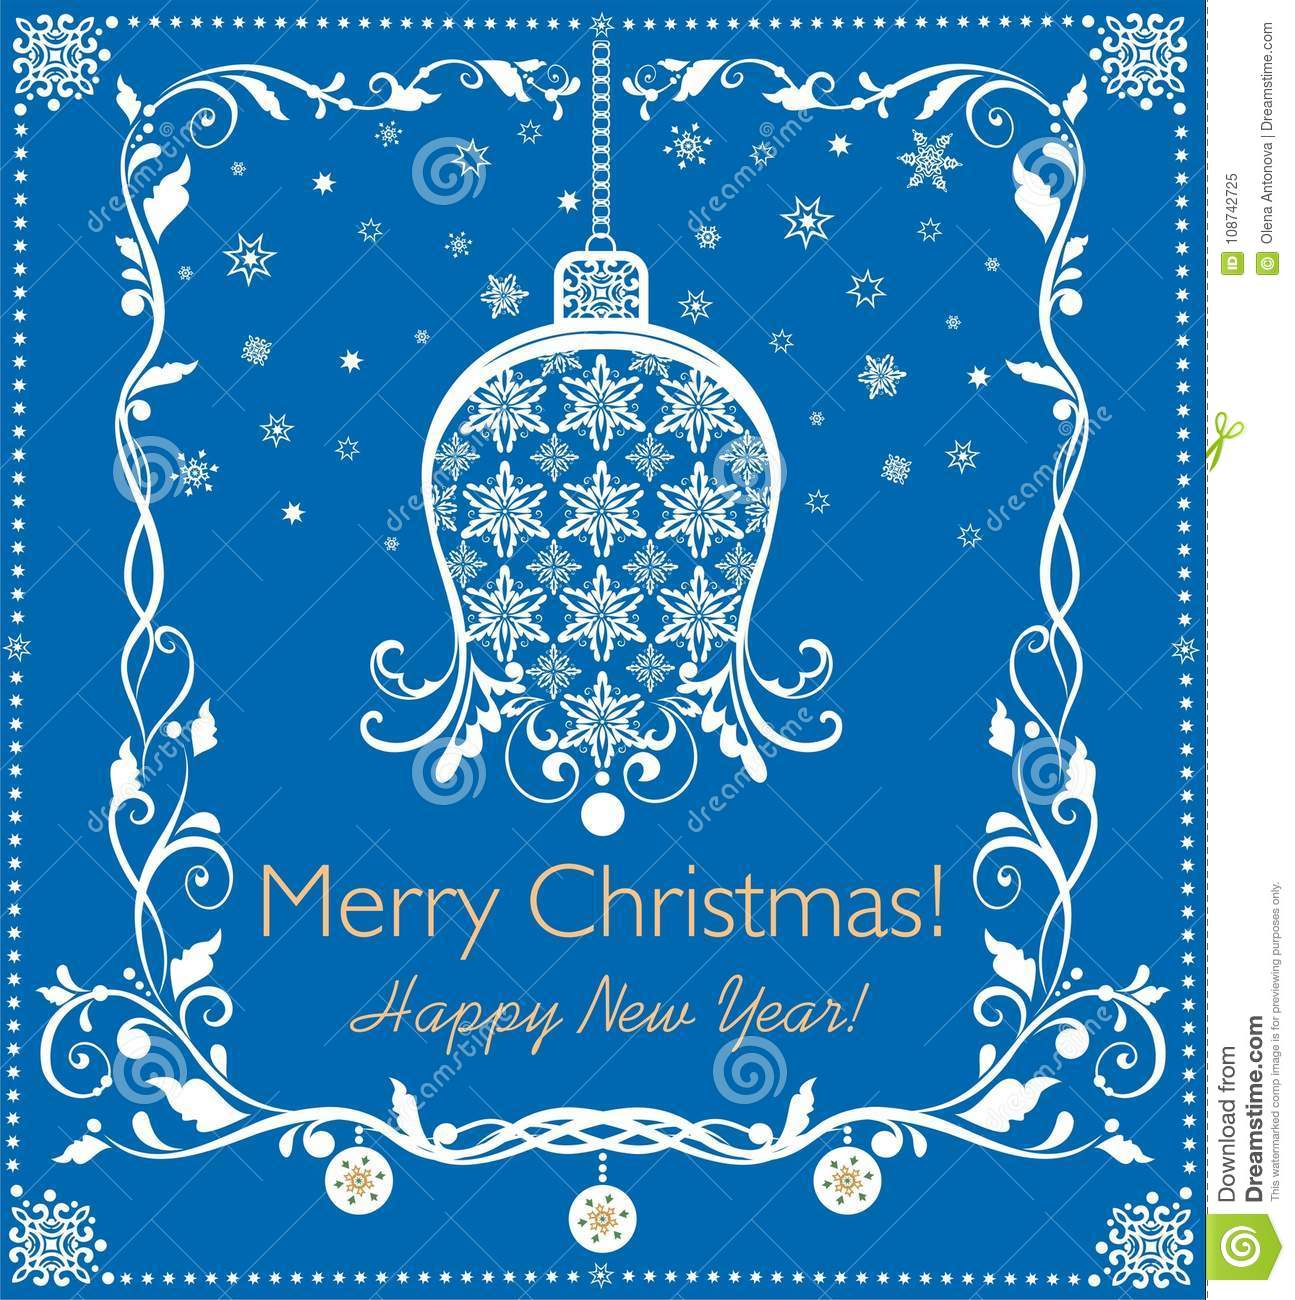 Beautiful paper blue applique for christmas and new year greetings download beautiful paper blue applique for christmas and new year greetings with hanging bell snowflakes m4hsunfo